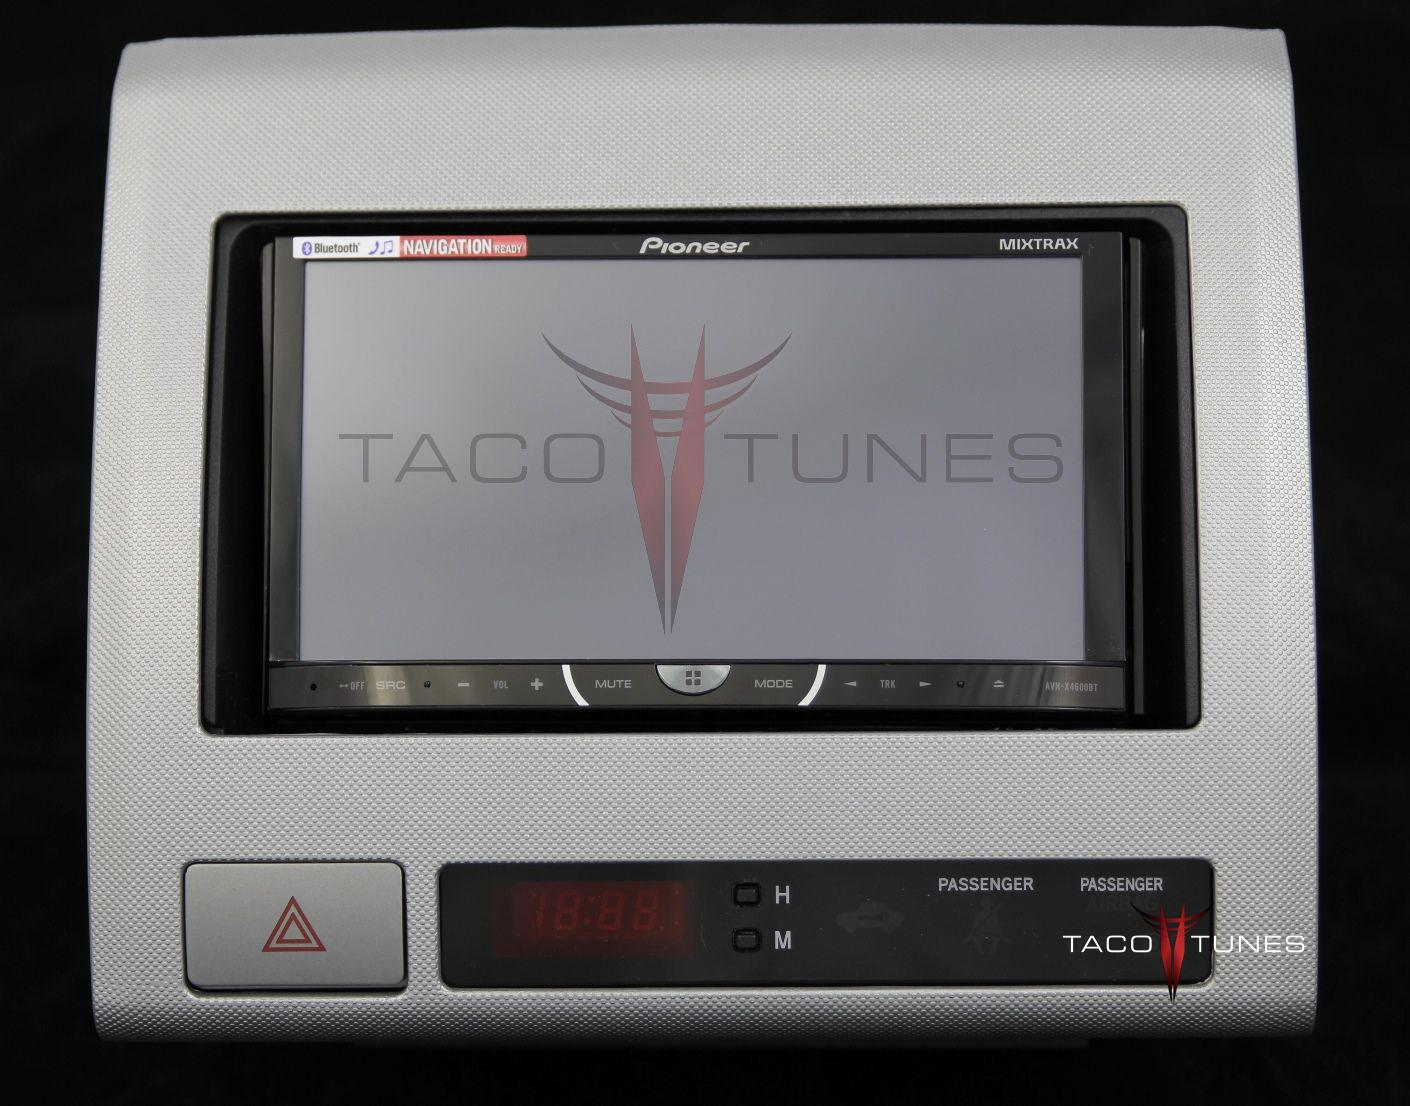 2005 2011 Toyota Tacoma Aftermarket Stereo Installation Kit Single Din Car Radio Install Dash Mount With Wiring Silver